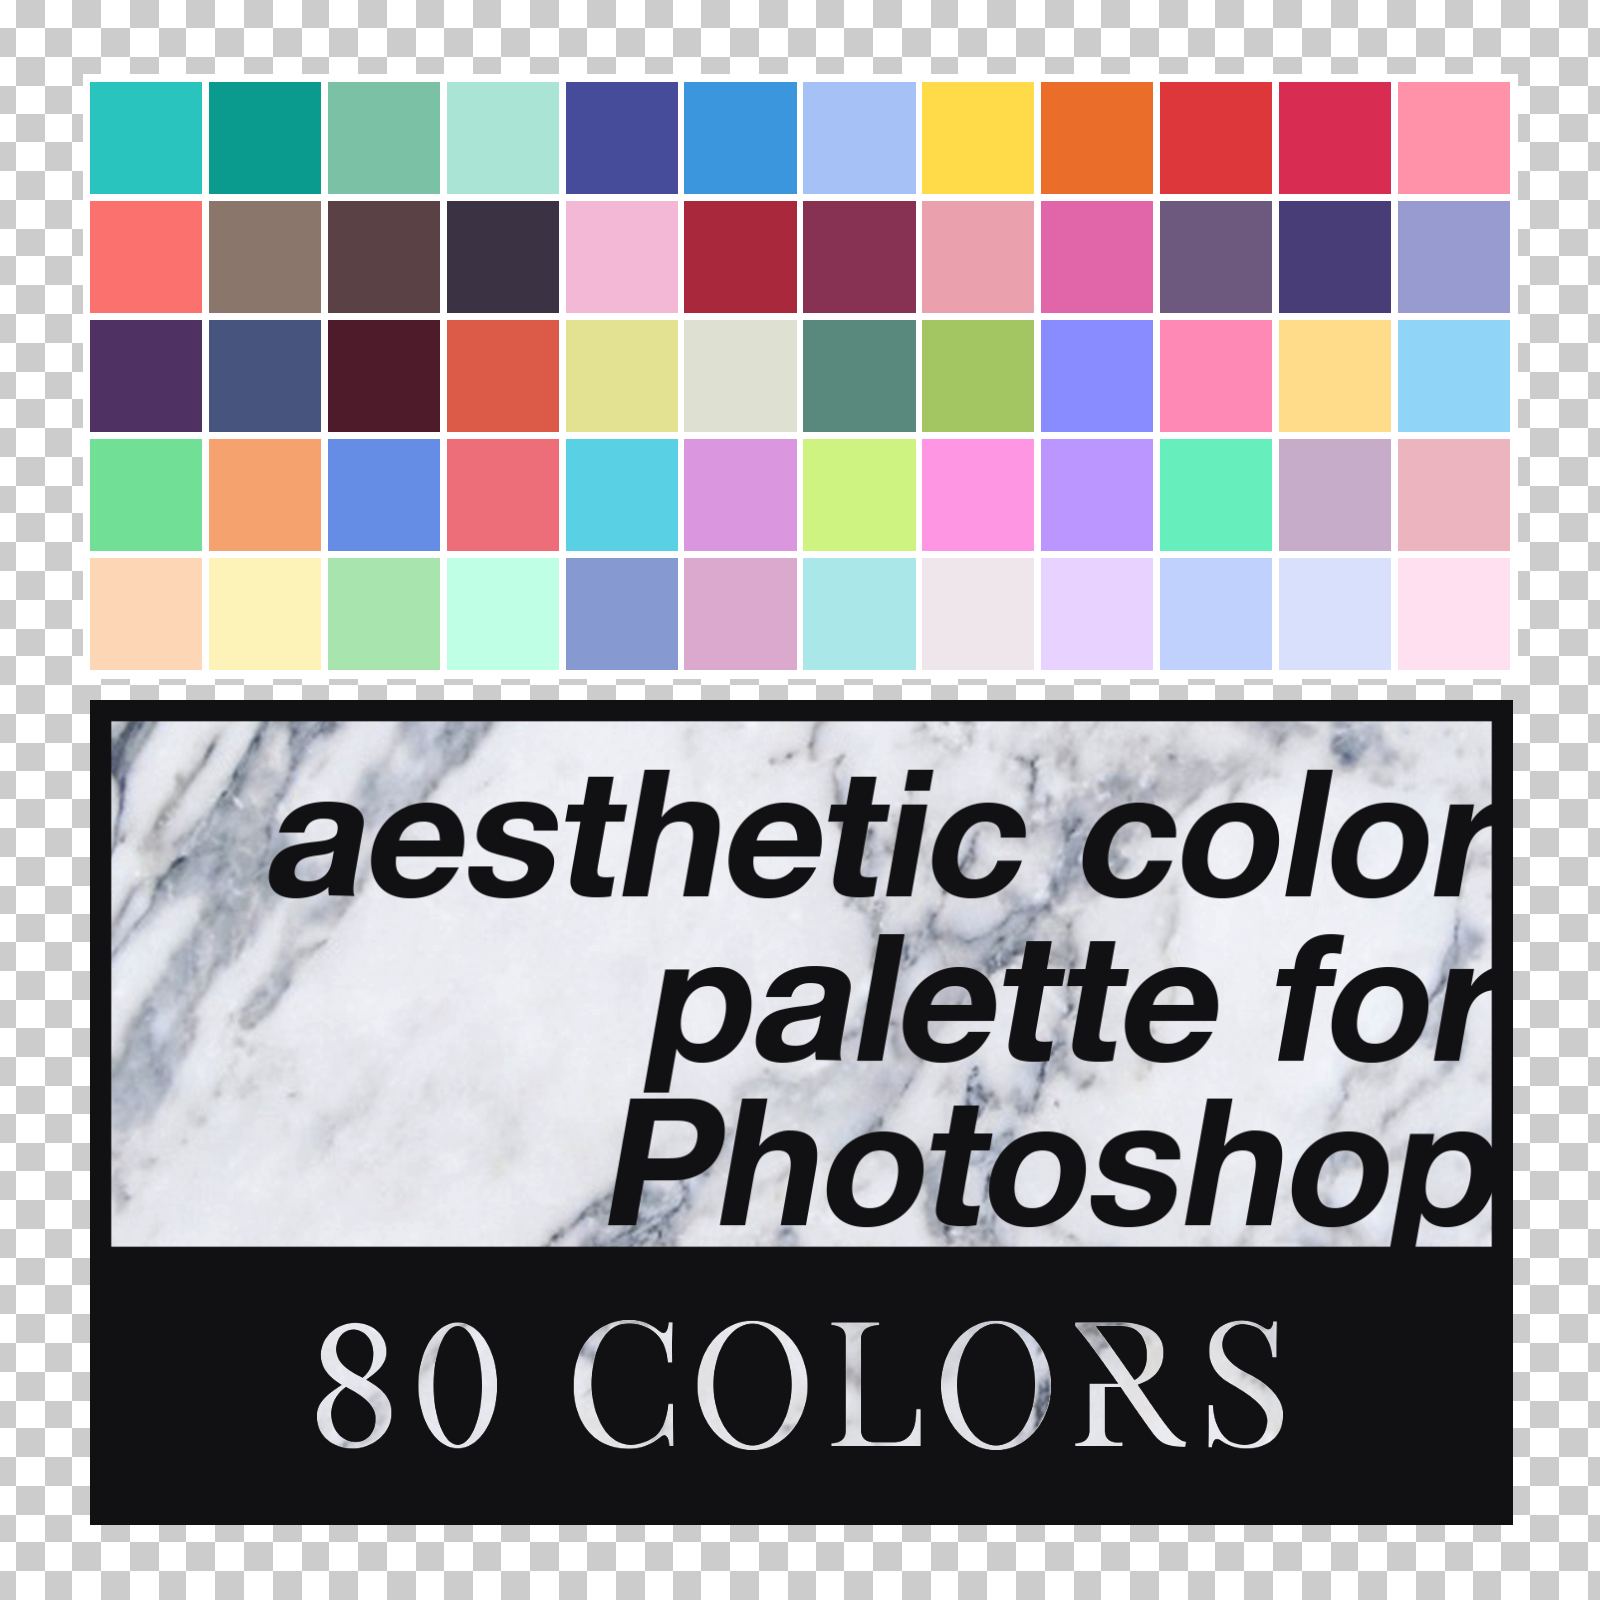 aesthetic color palette for photoshop by louann1812 on deviantart